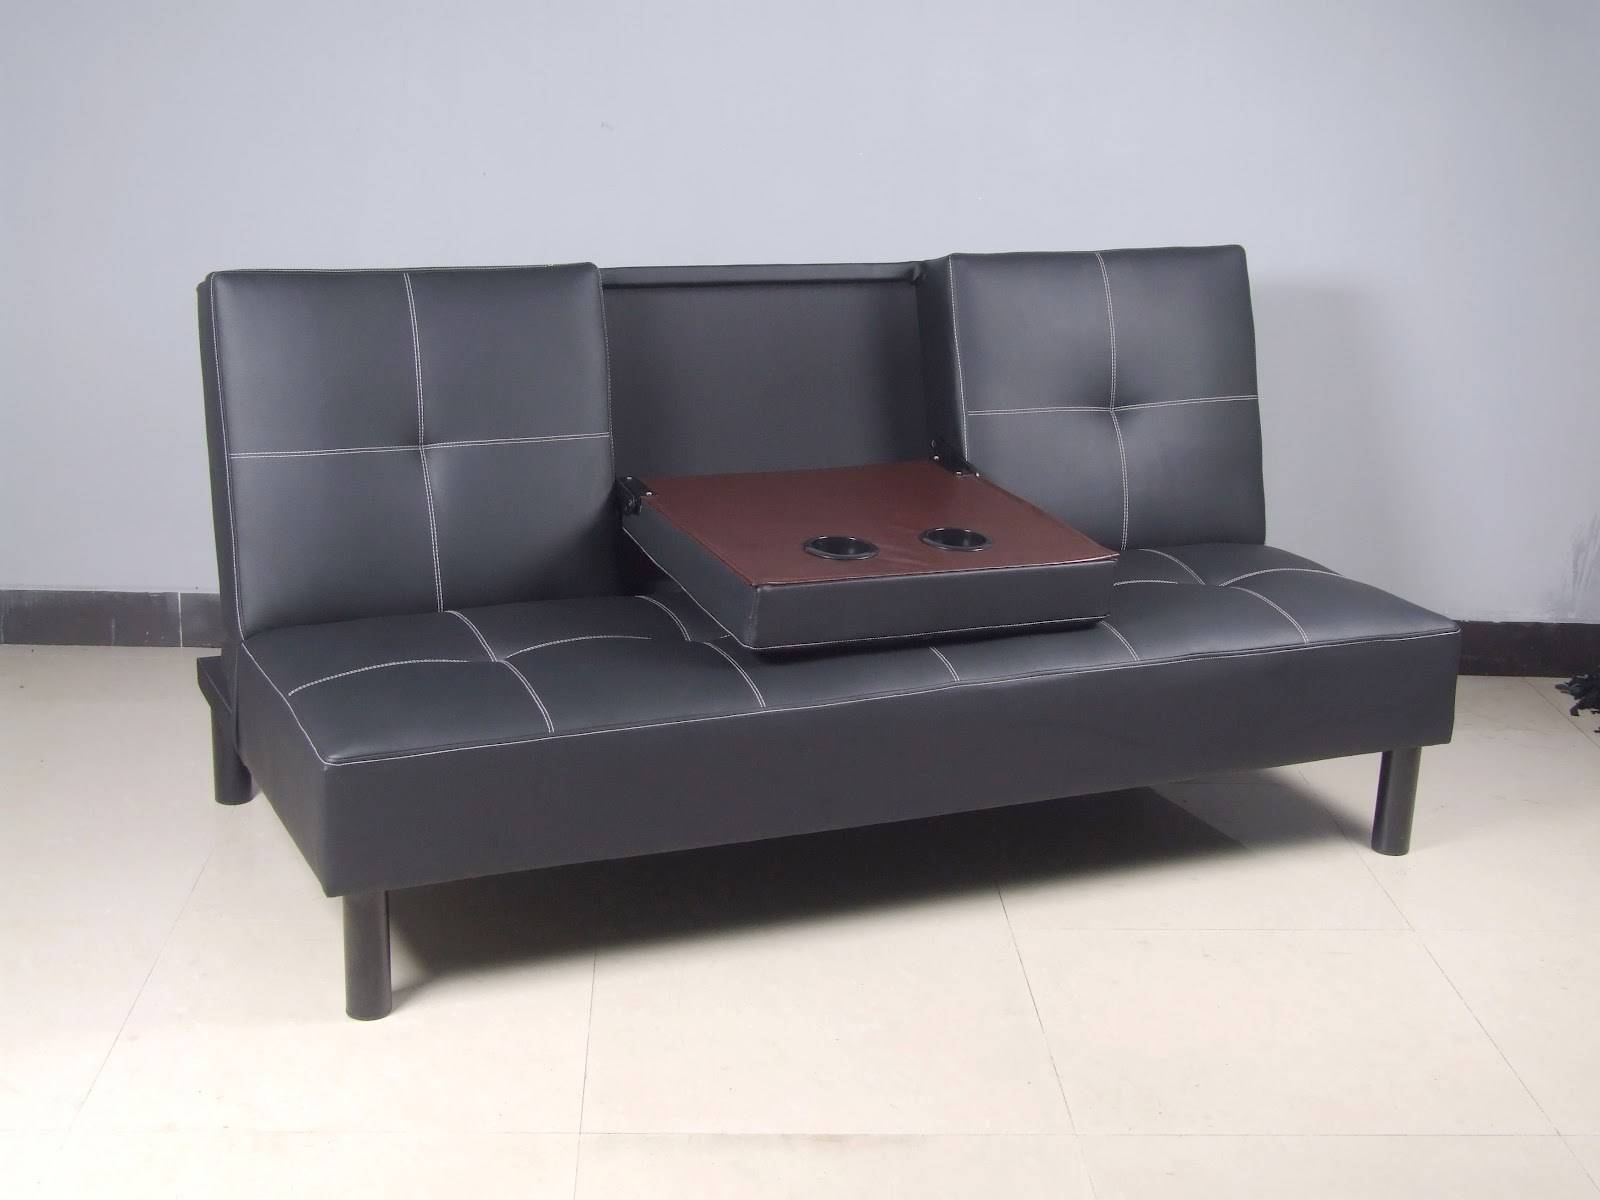 ▻ Sofa : 9 Corner Sofa Bed Ikea Alluring Sectional Sofa Bed Ikea with regard to Leather Corner Sofa Bed (Image 30 of 30)